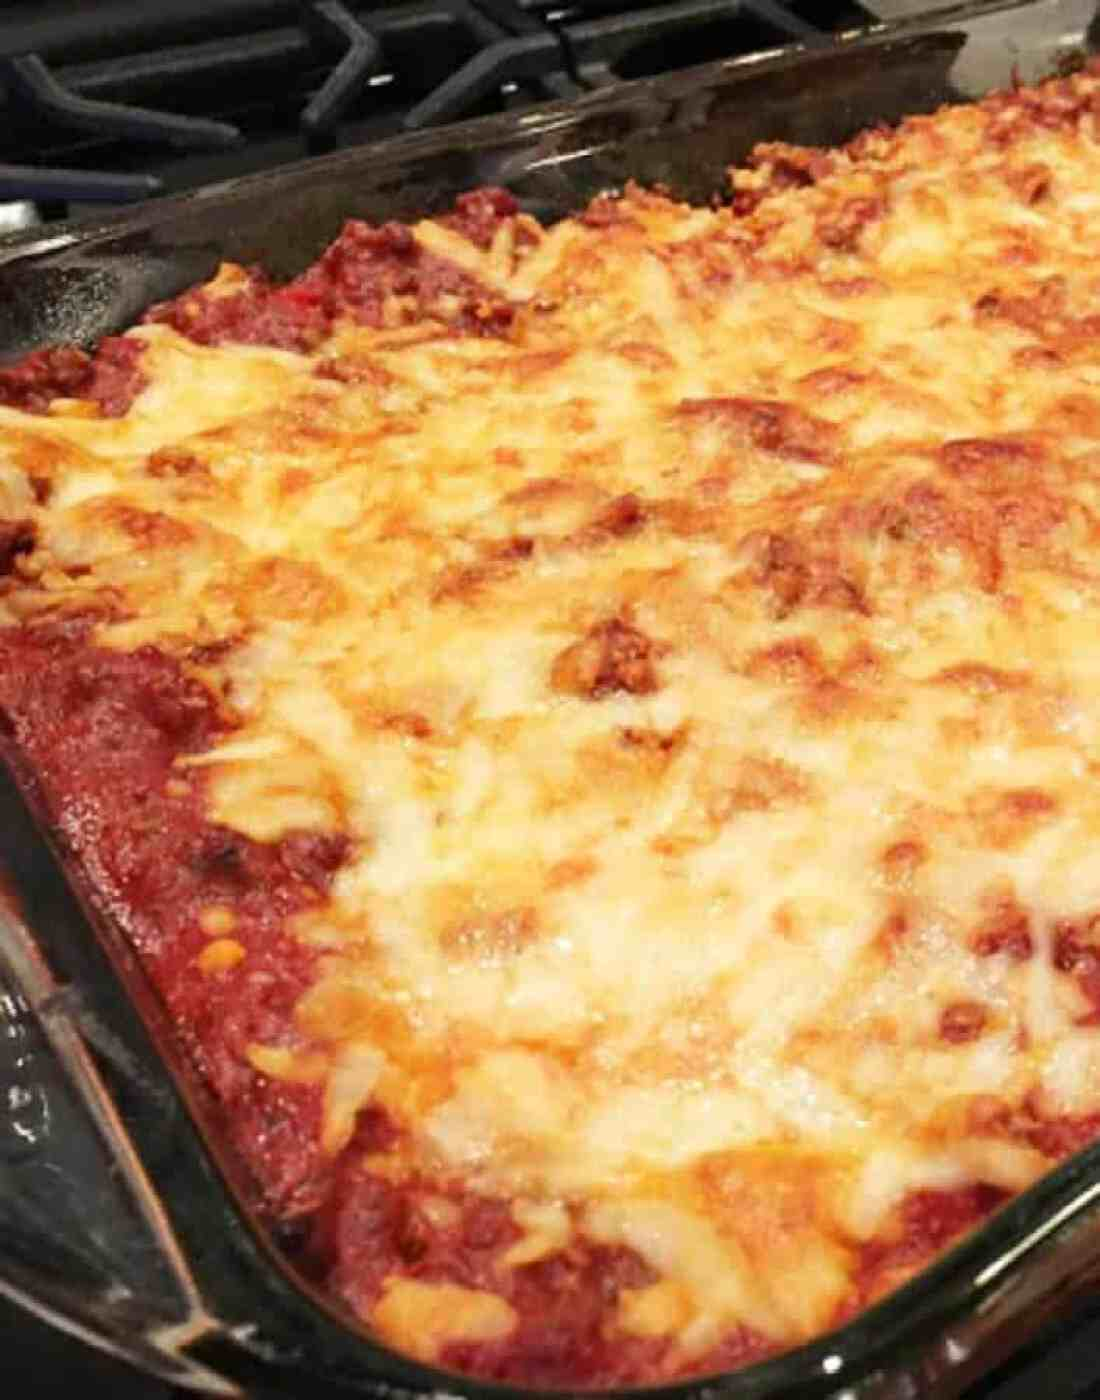 This Baked Spaghetti Casserole from Merry About Town is a simple ...